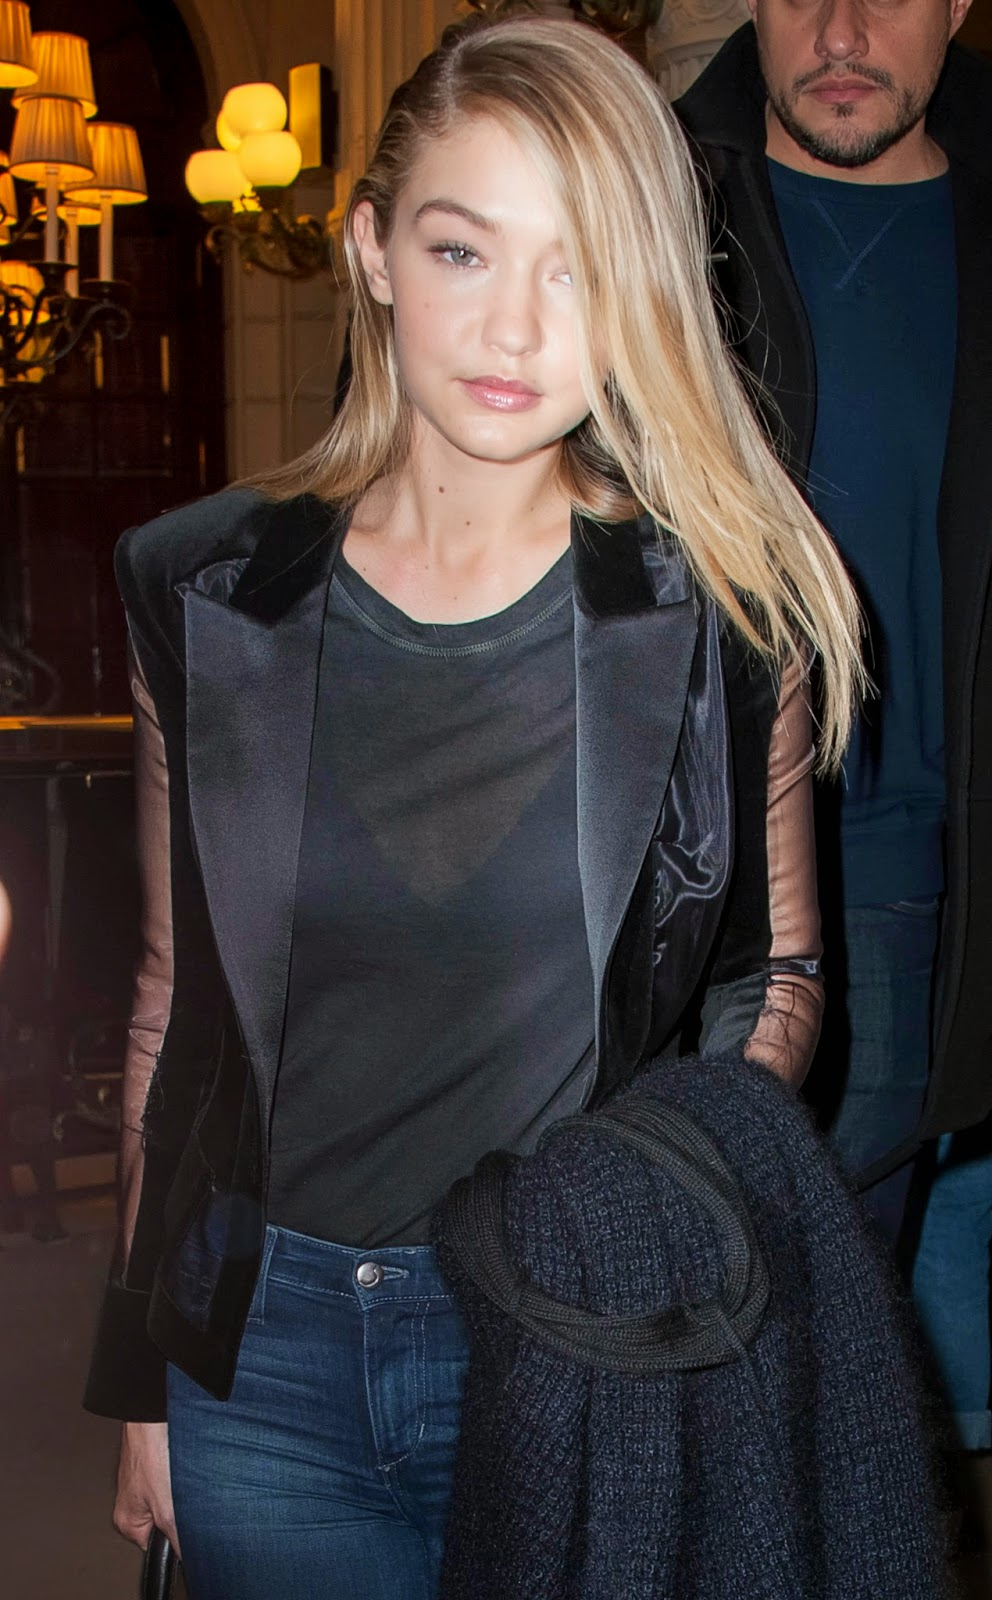 Fashion Model @ Gigi Hadid - SeeThru to bra at Balmain fashion show in Paris